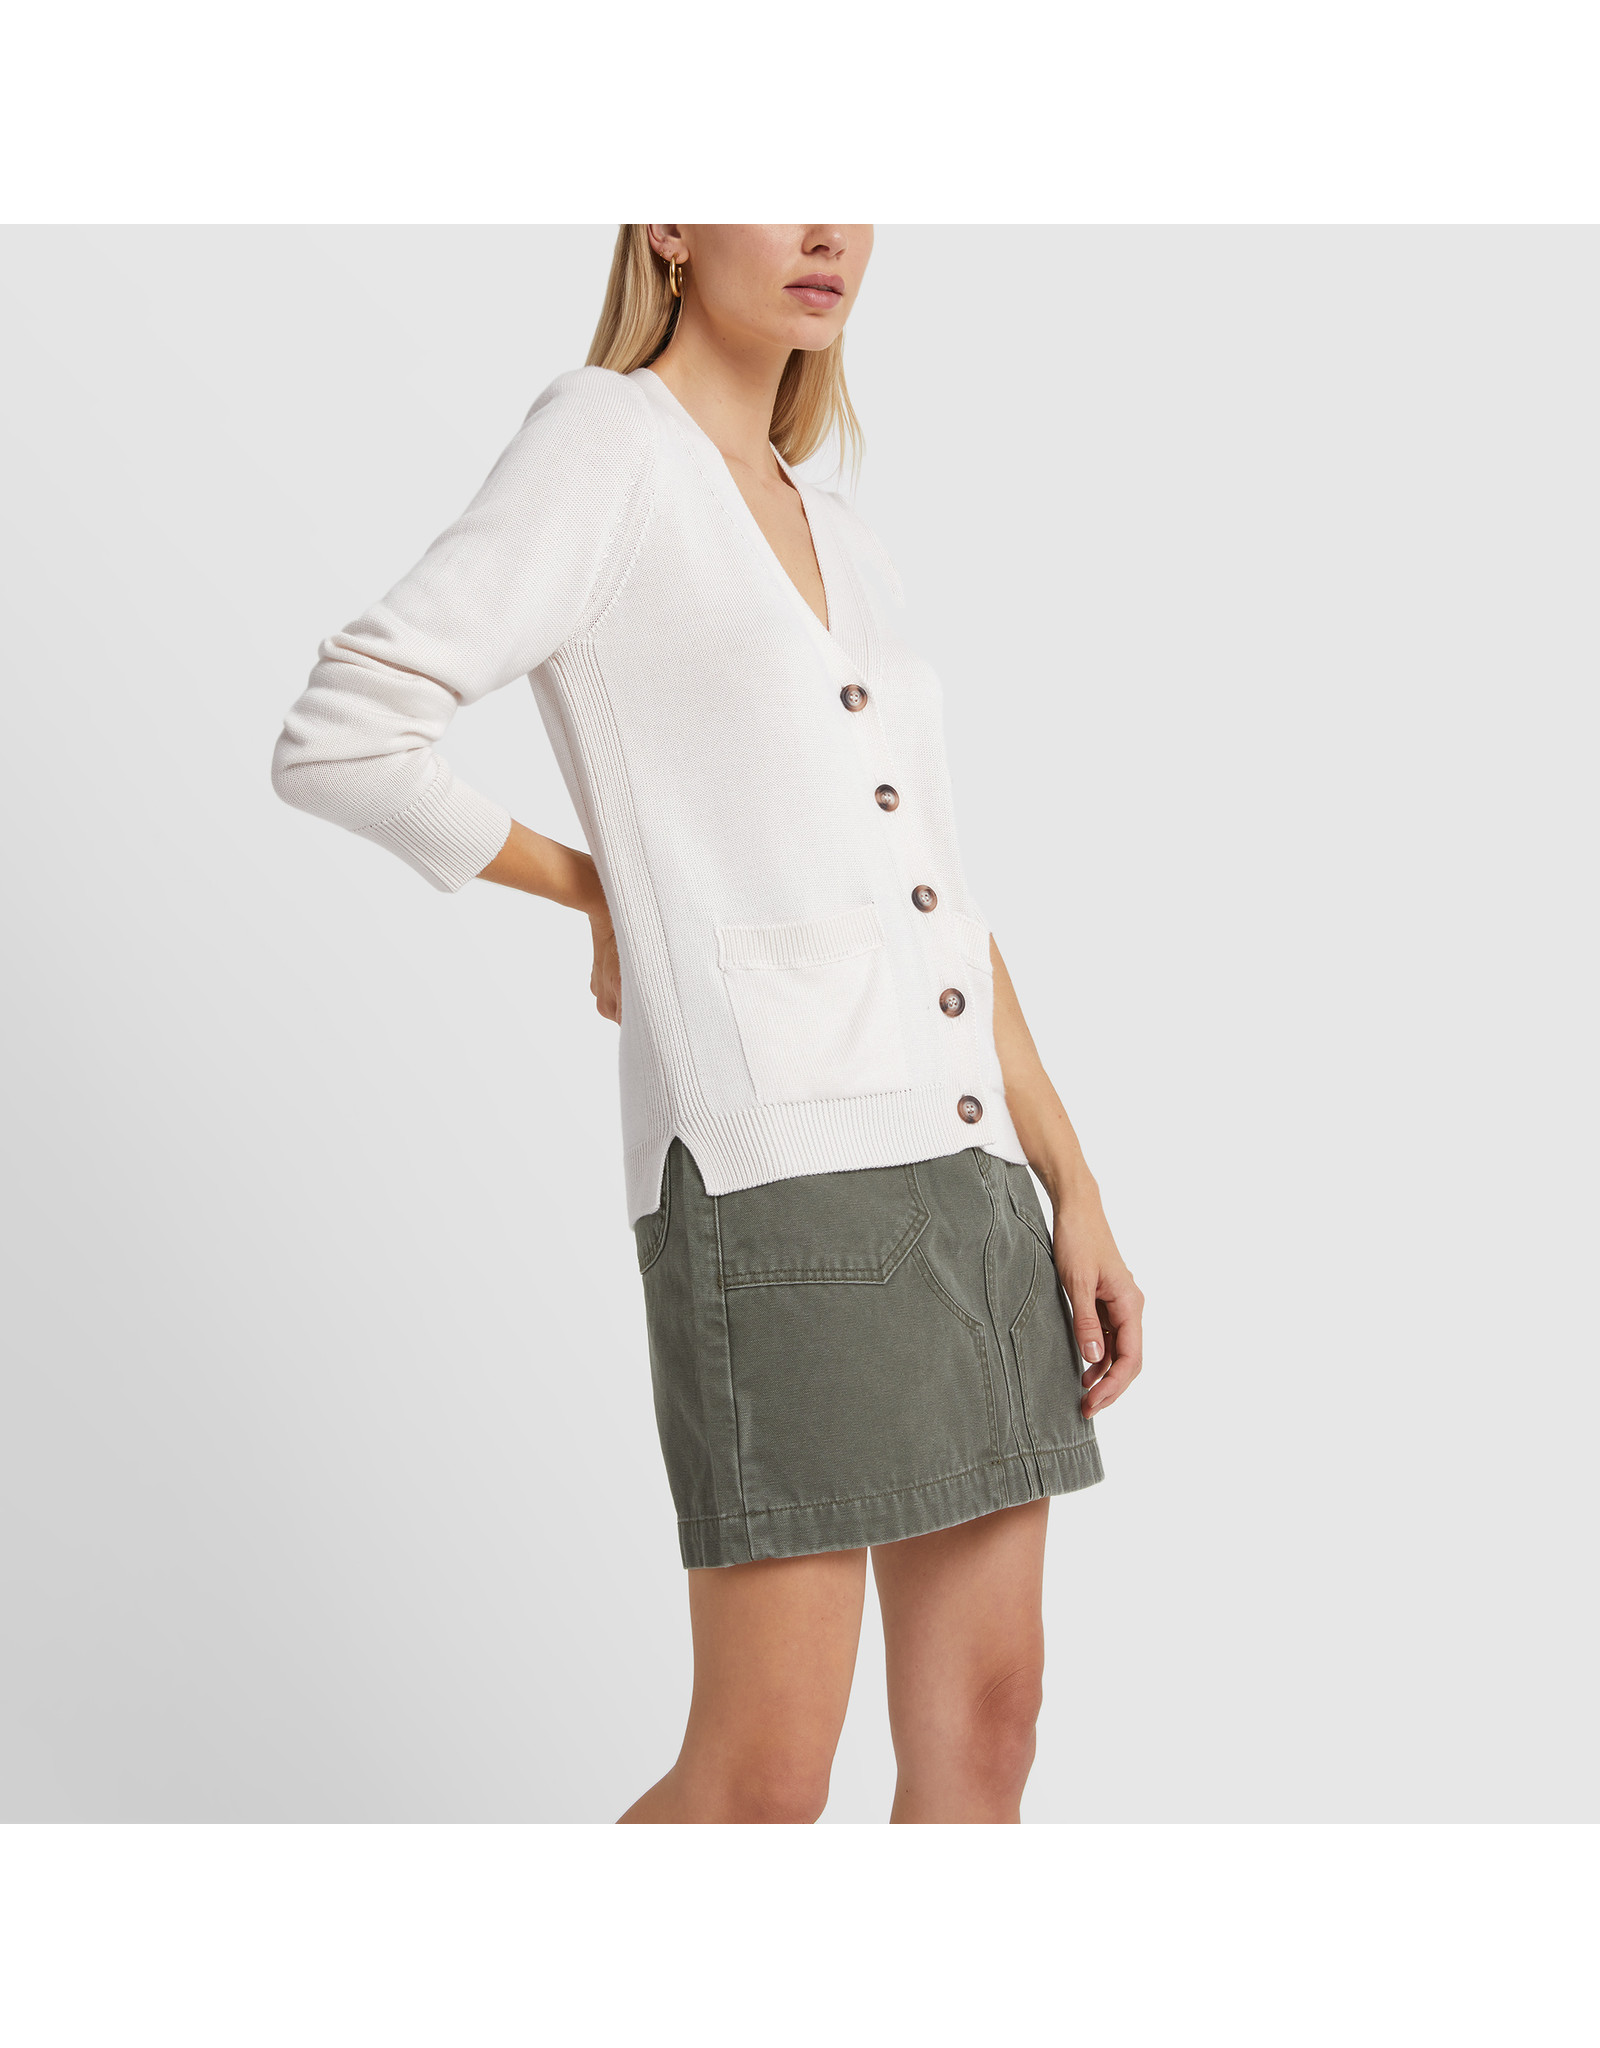 G. Label G. Label Lightweight Erica Cardigan (Color: White, Size: XS)